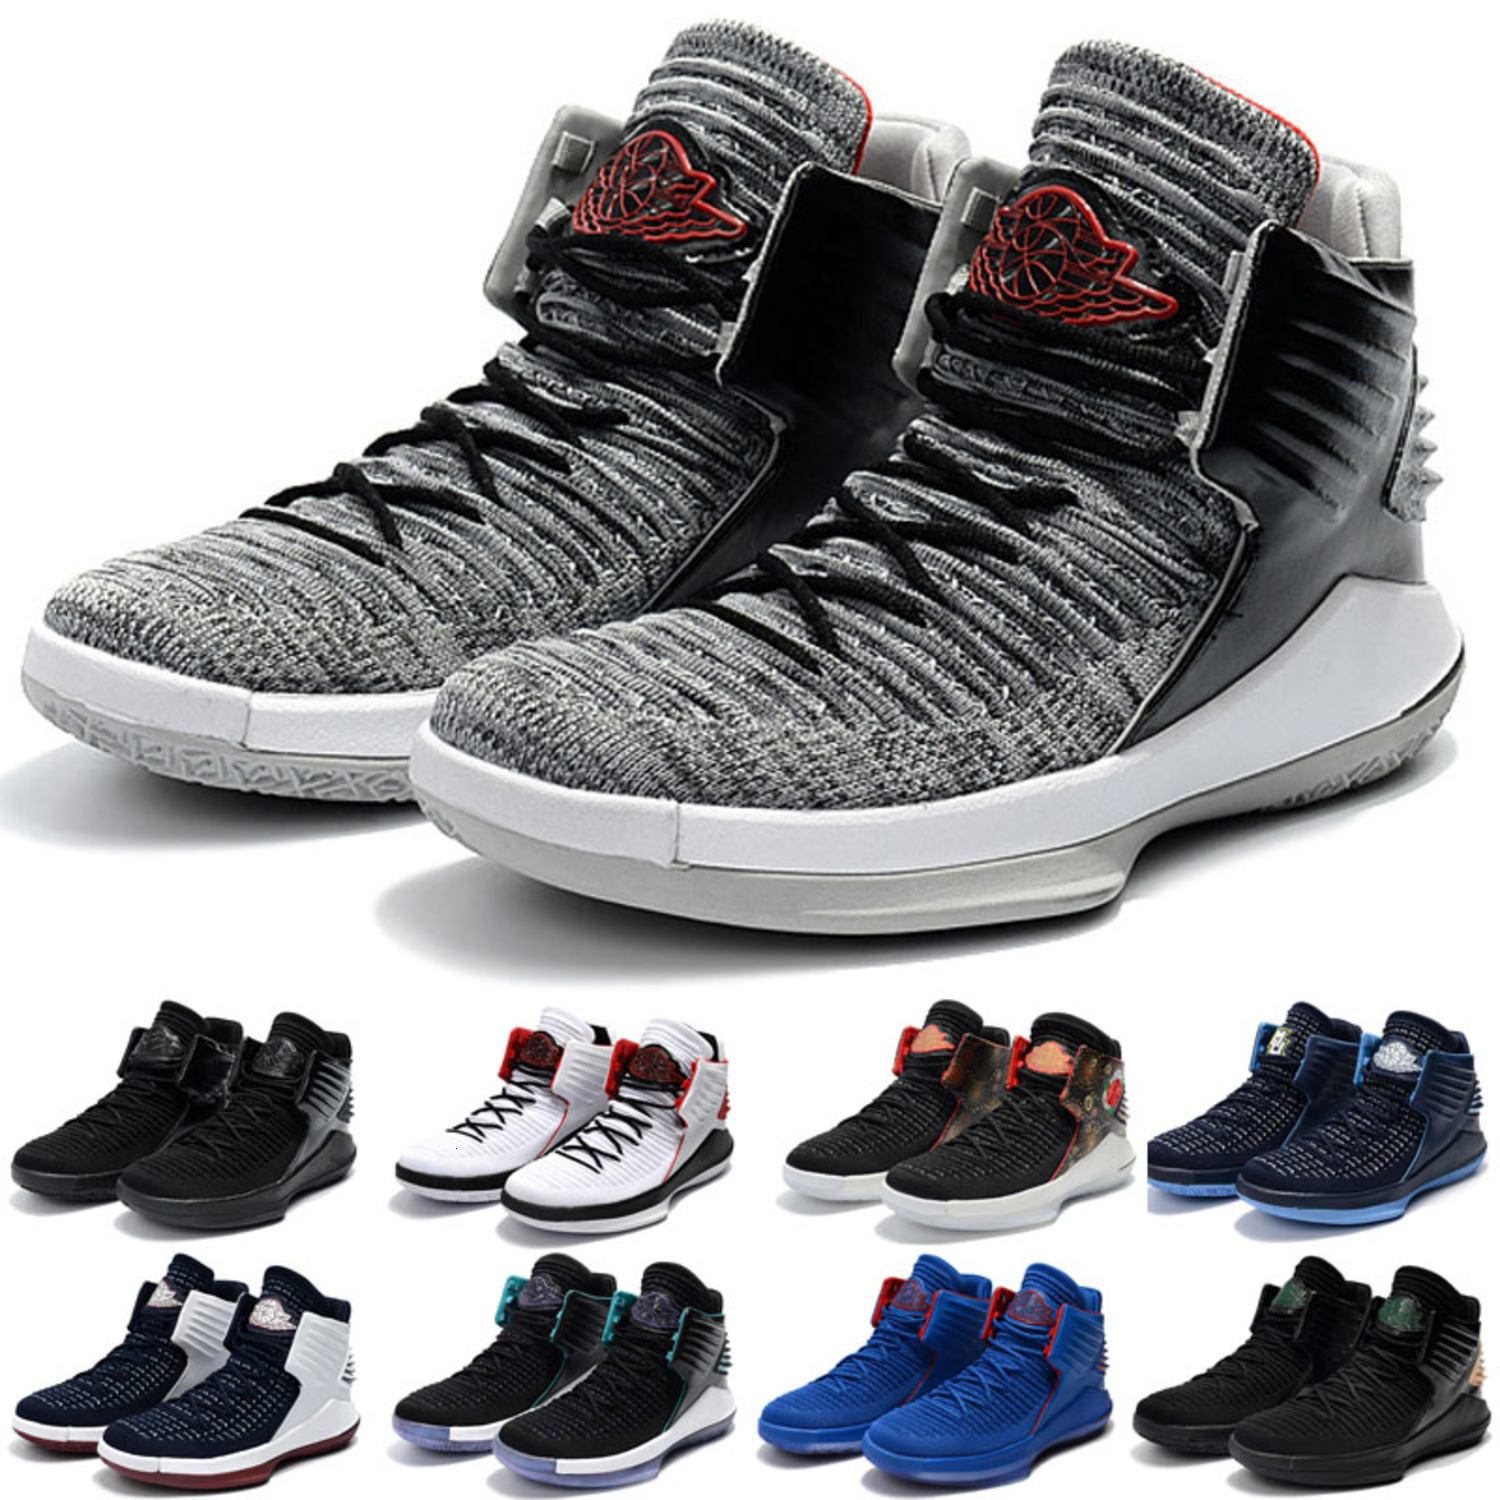 New Style Boys Shoes 2020 on Sale at